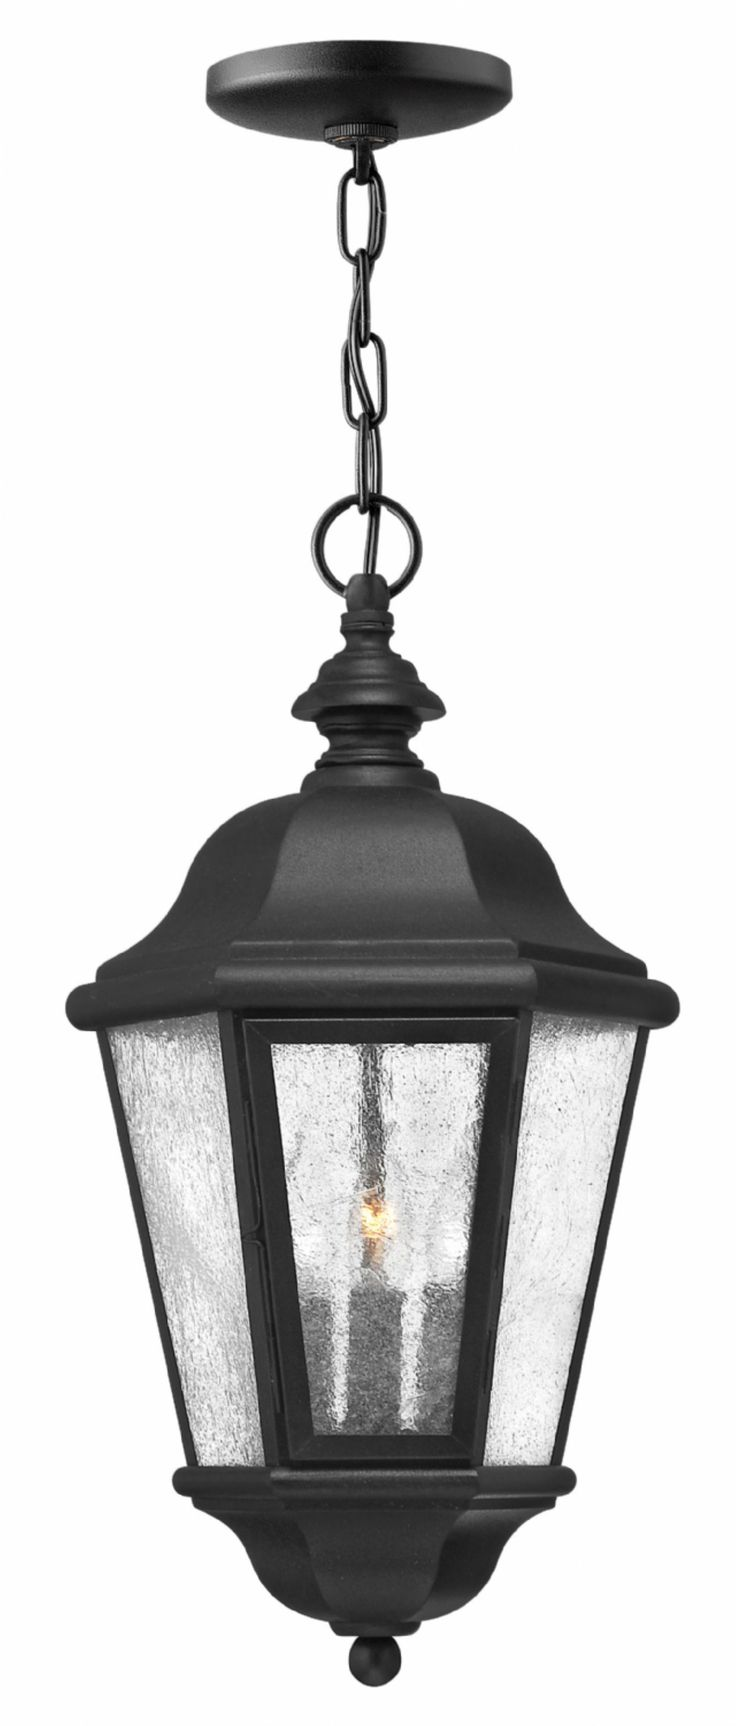 25 best lights images on pinterest sconces light fixtures and hinkley lighting carries many black edgewater exterior ceiling mount light fixtures that can be used to enhance the appearance and lighting of any home arubaitofo Images